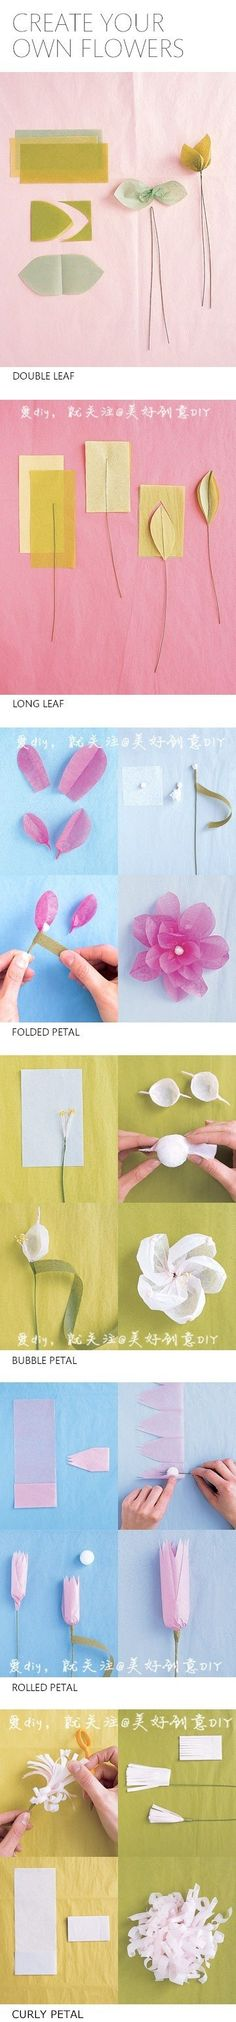 DIY All Kinds of Beautiful Flowers | FabDIY